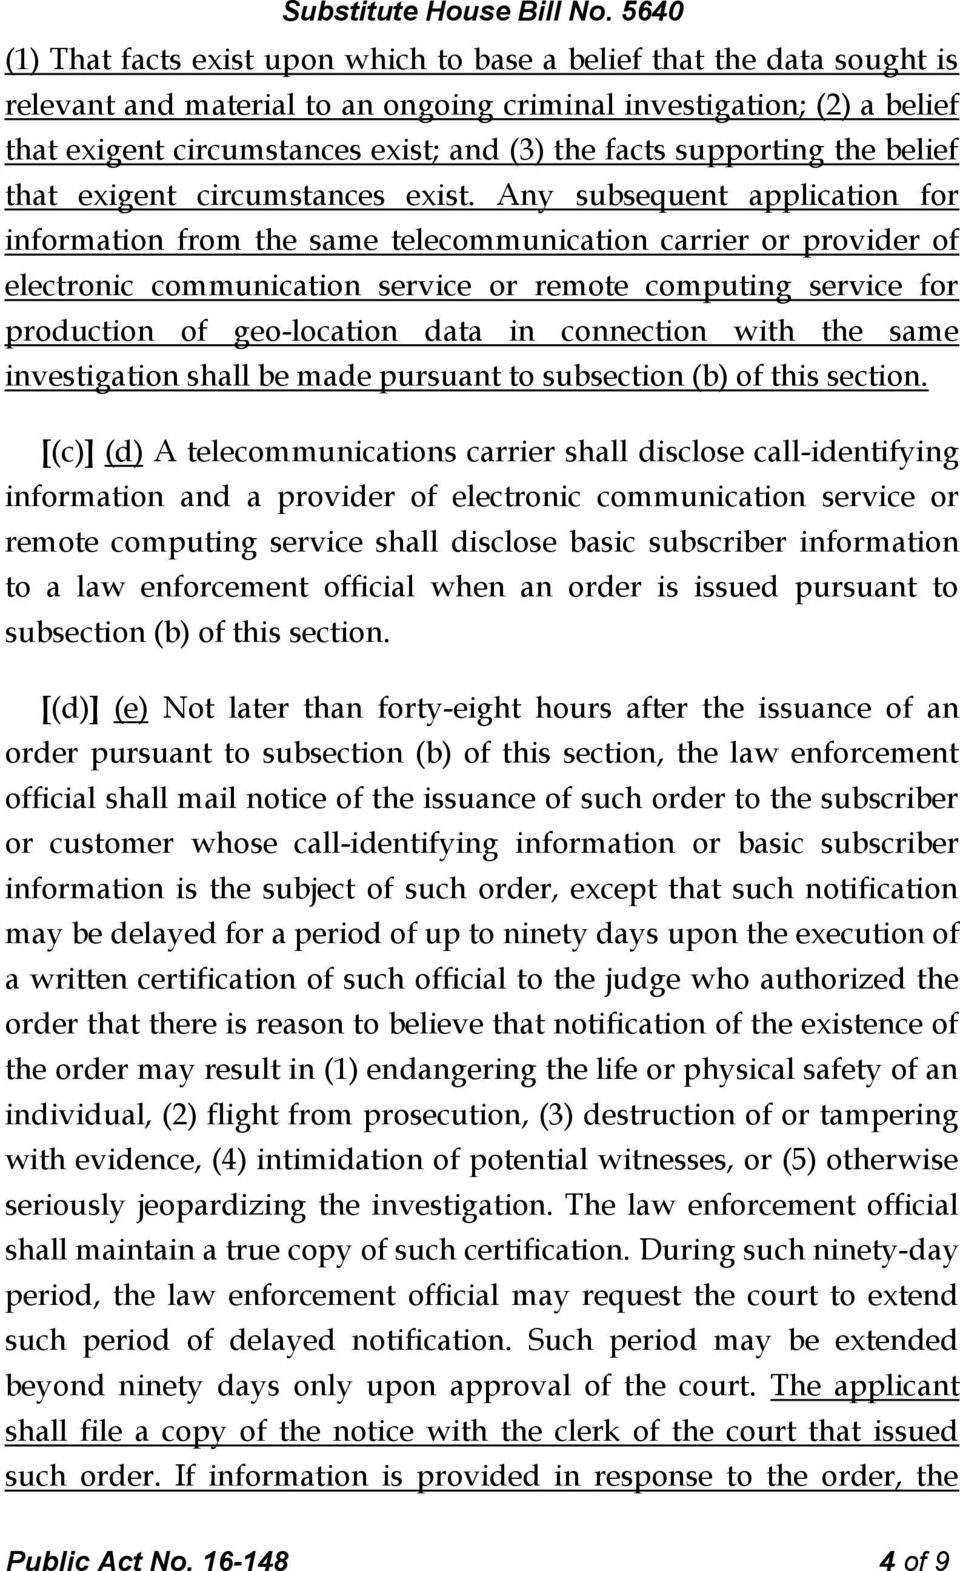 Any subsequent application for information from the same telecommunication carrier or provider of electronic communication service or remote computing service for production of geo-location data in